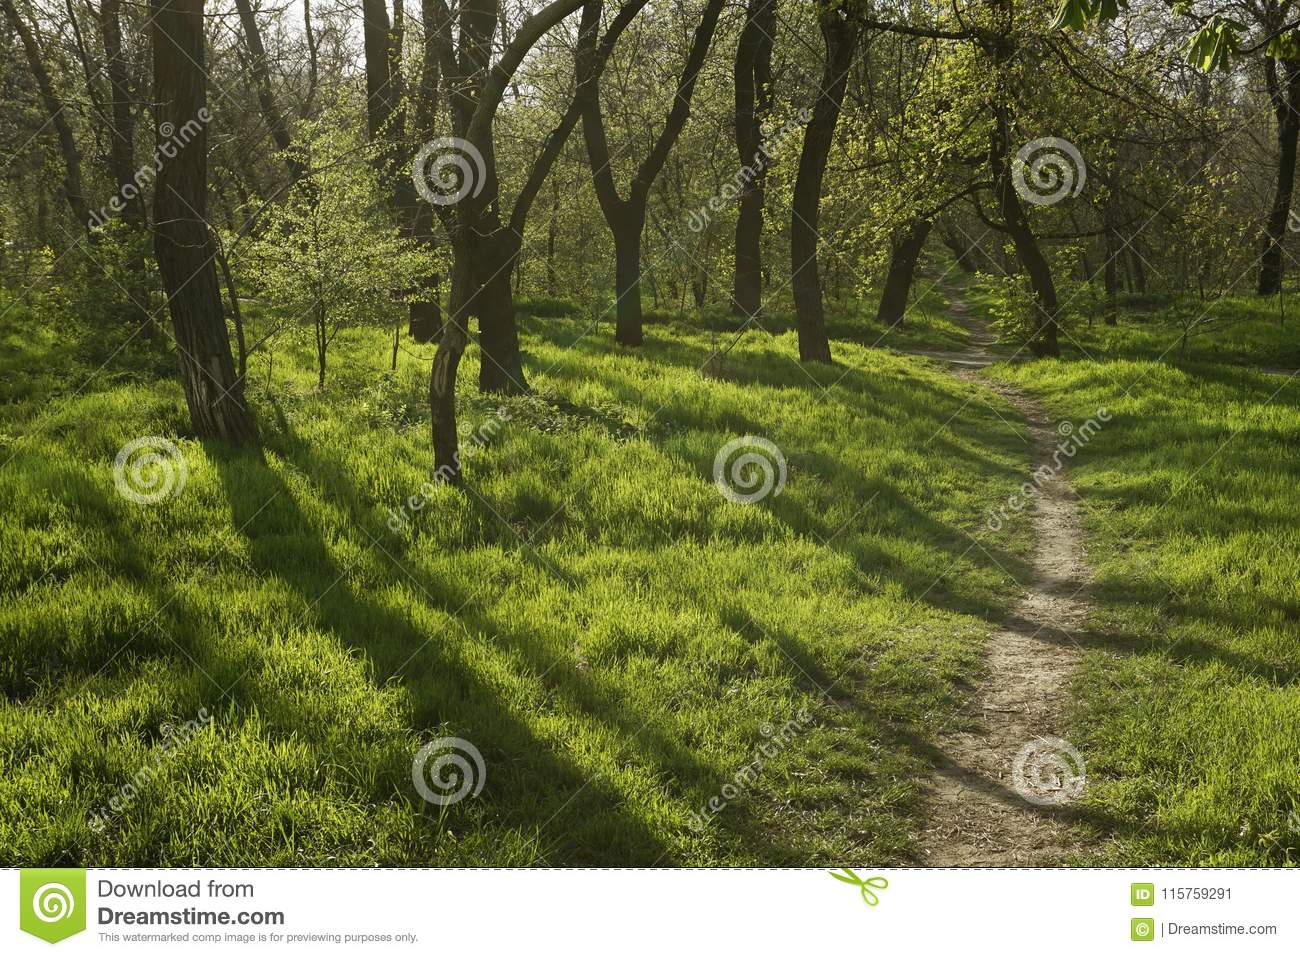 Sunset in the forest with long tree shadows and green grass